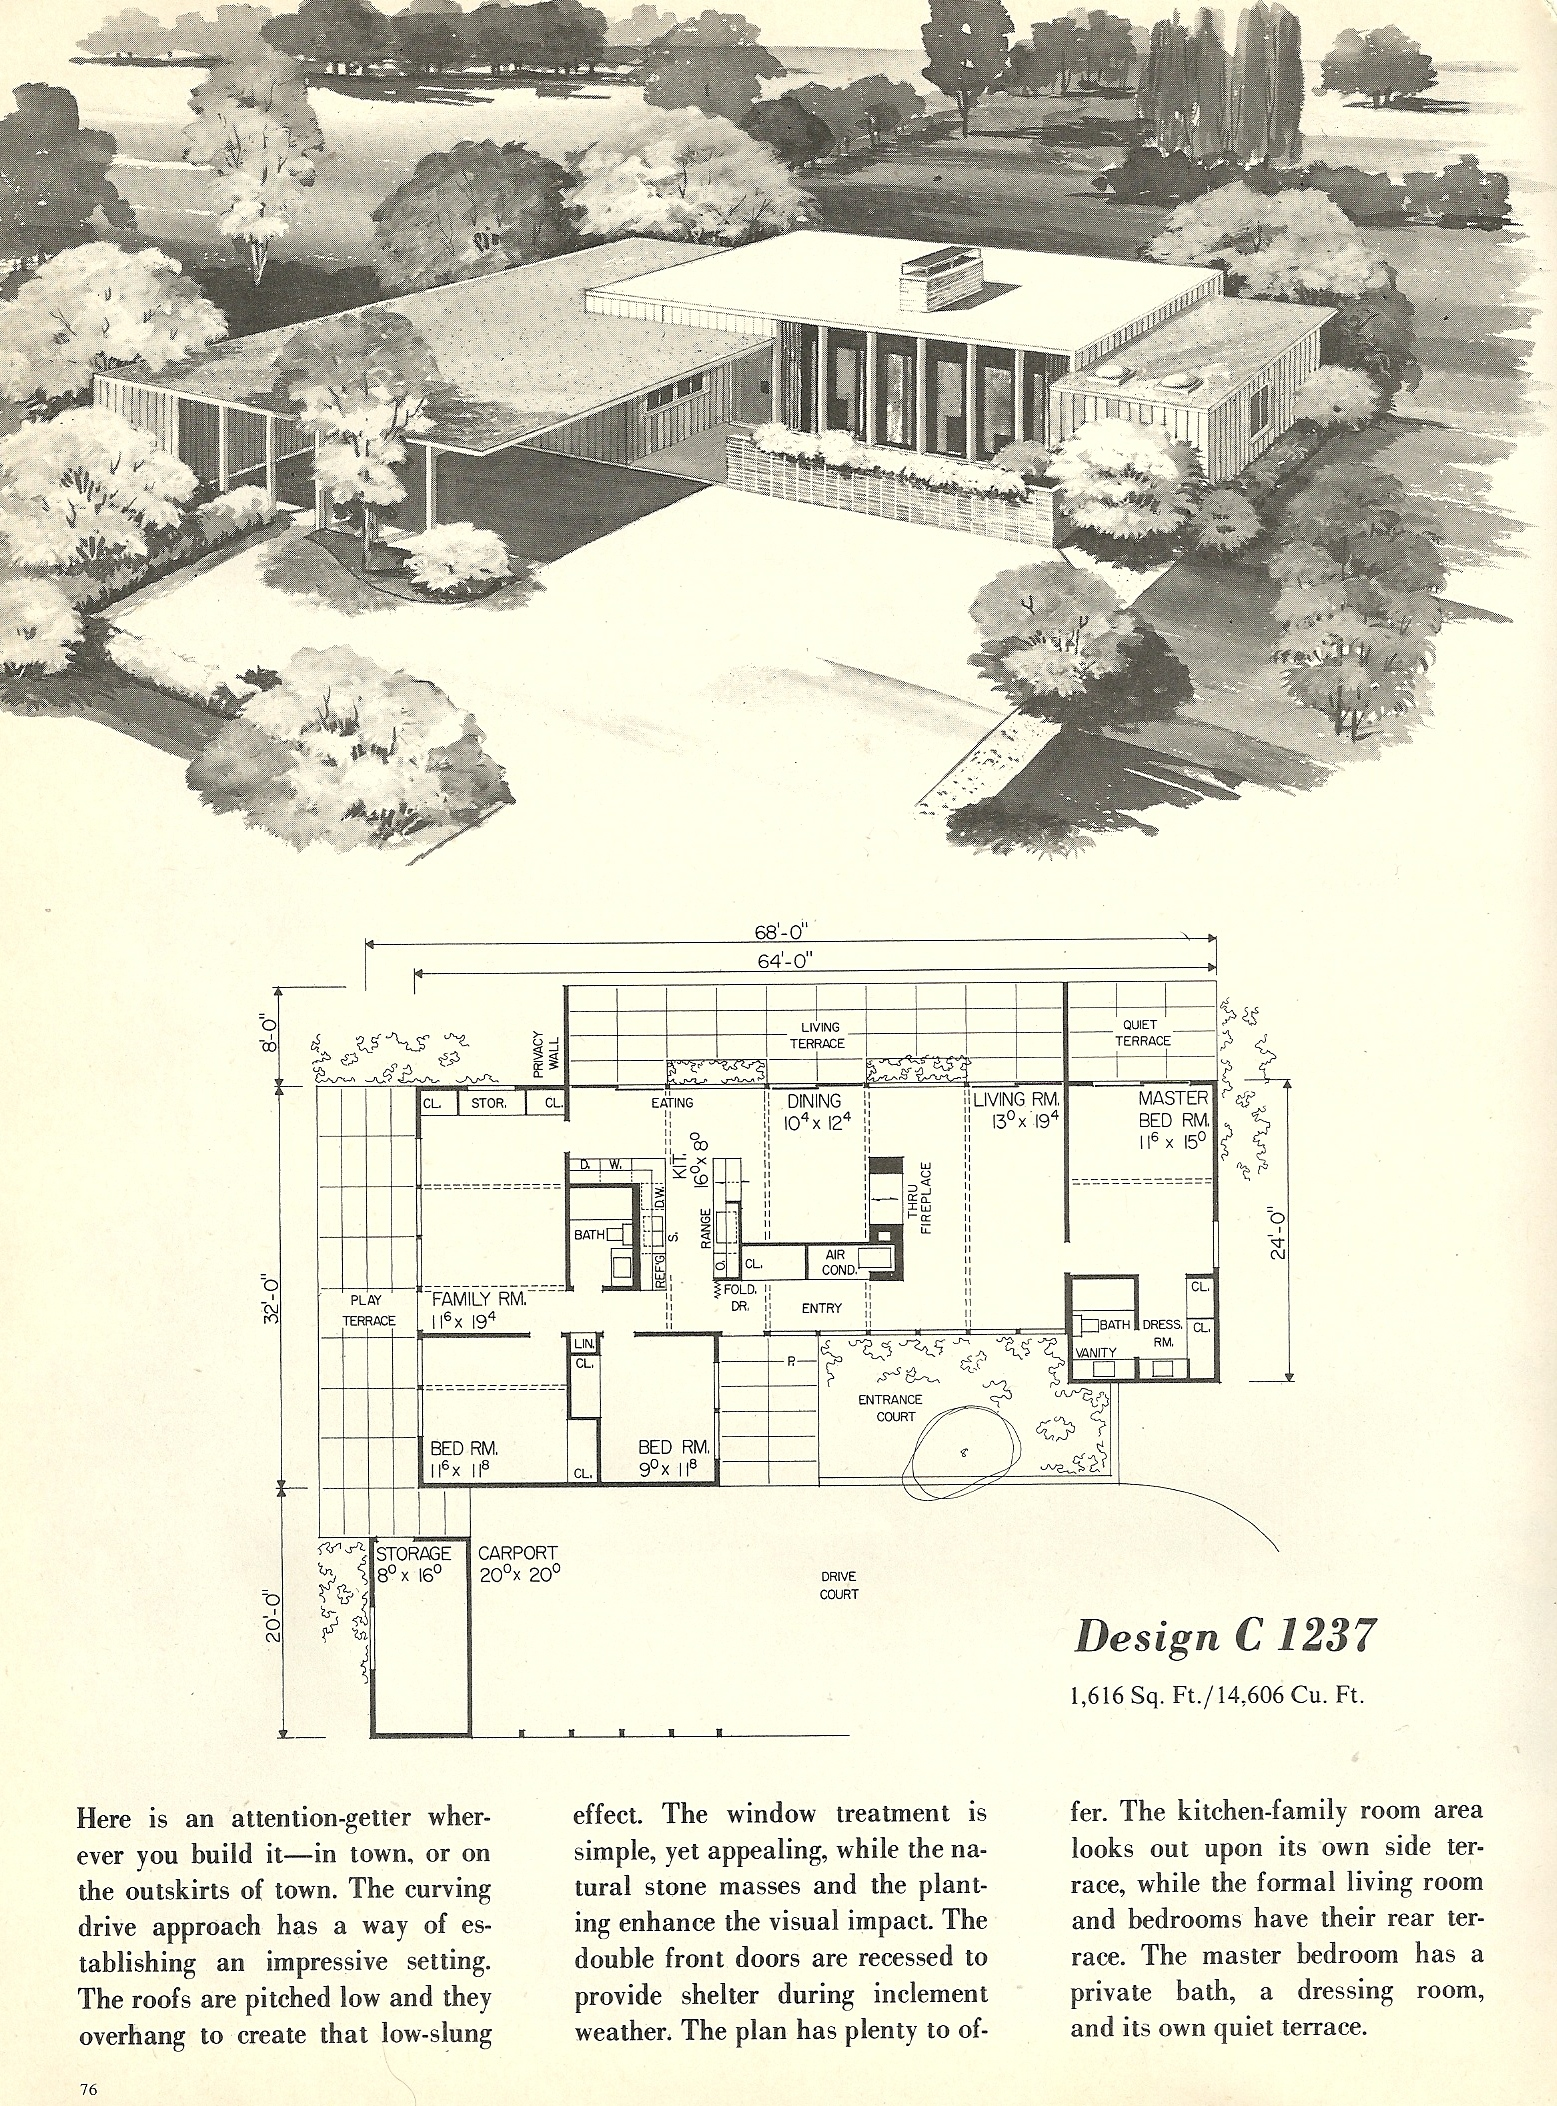 Vintage house plans 1237 antique alter ego for Mid century modern home floor plans